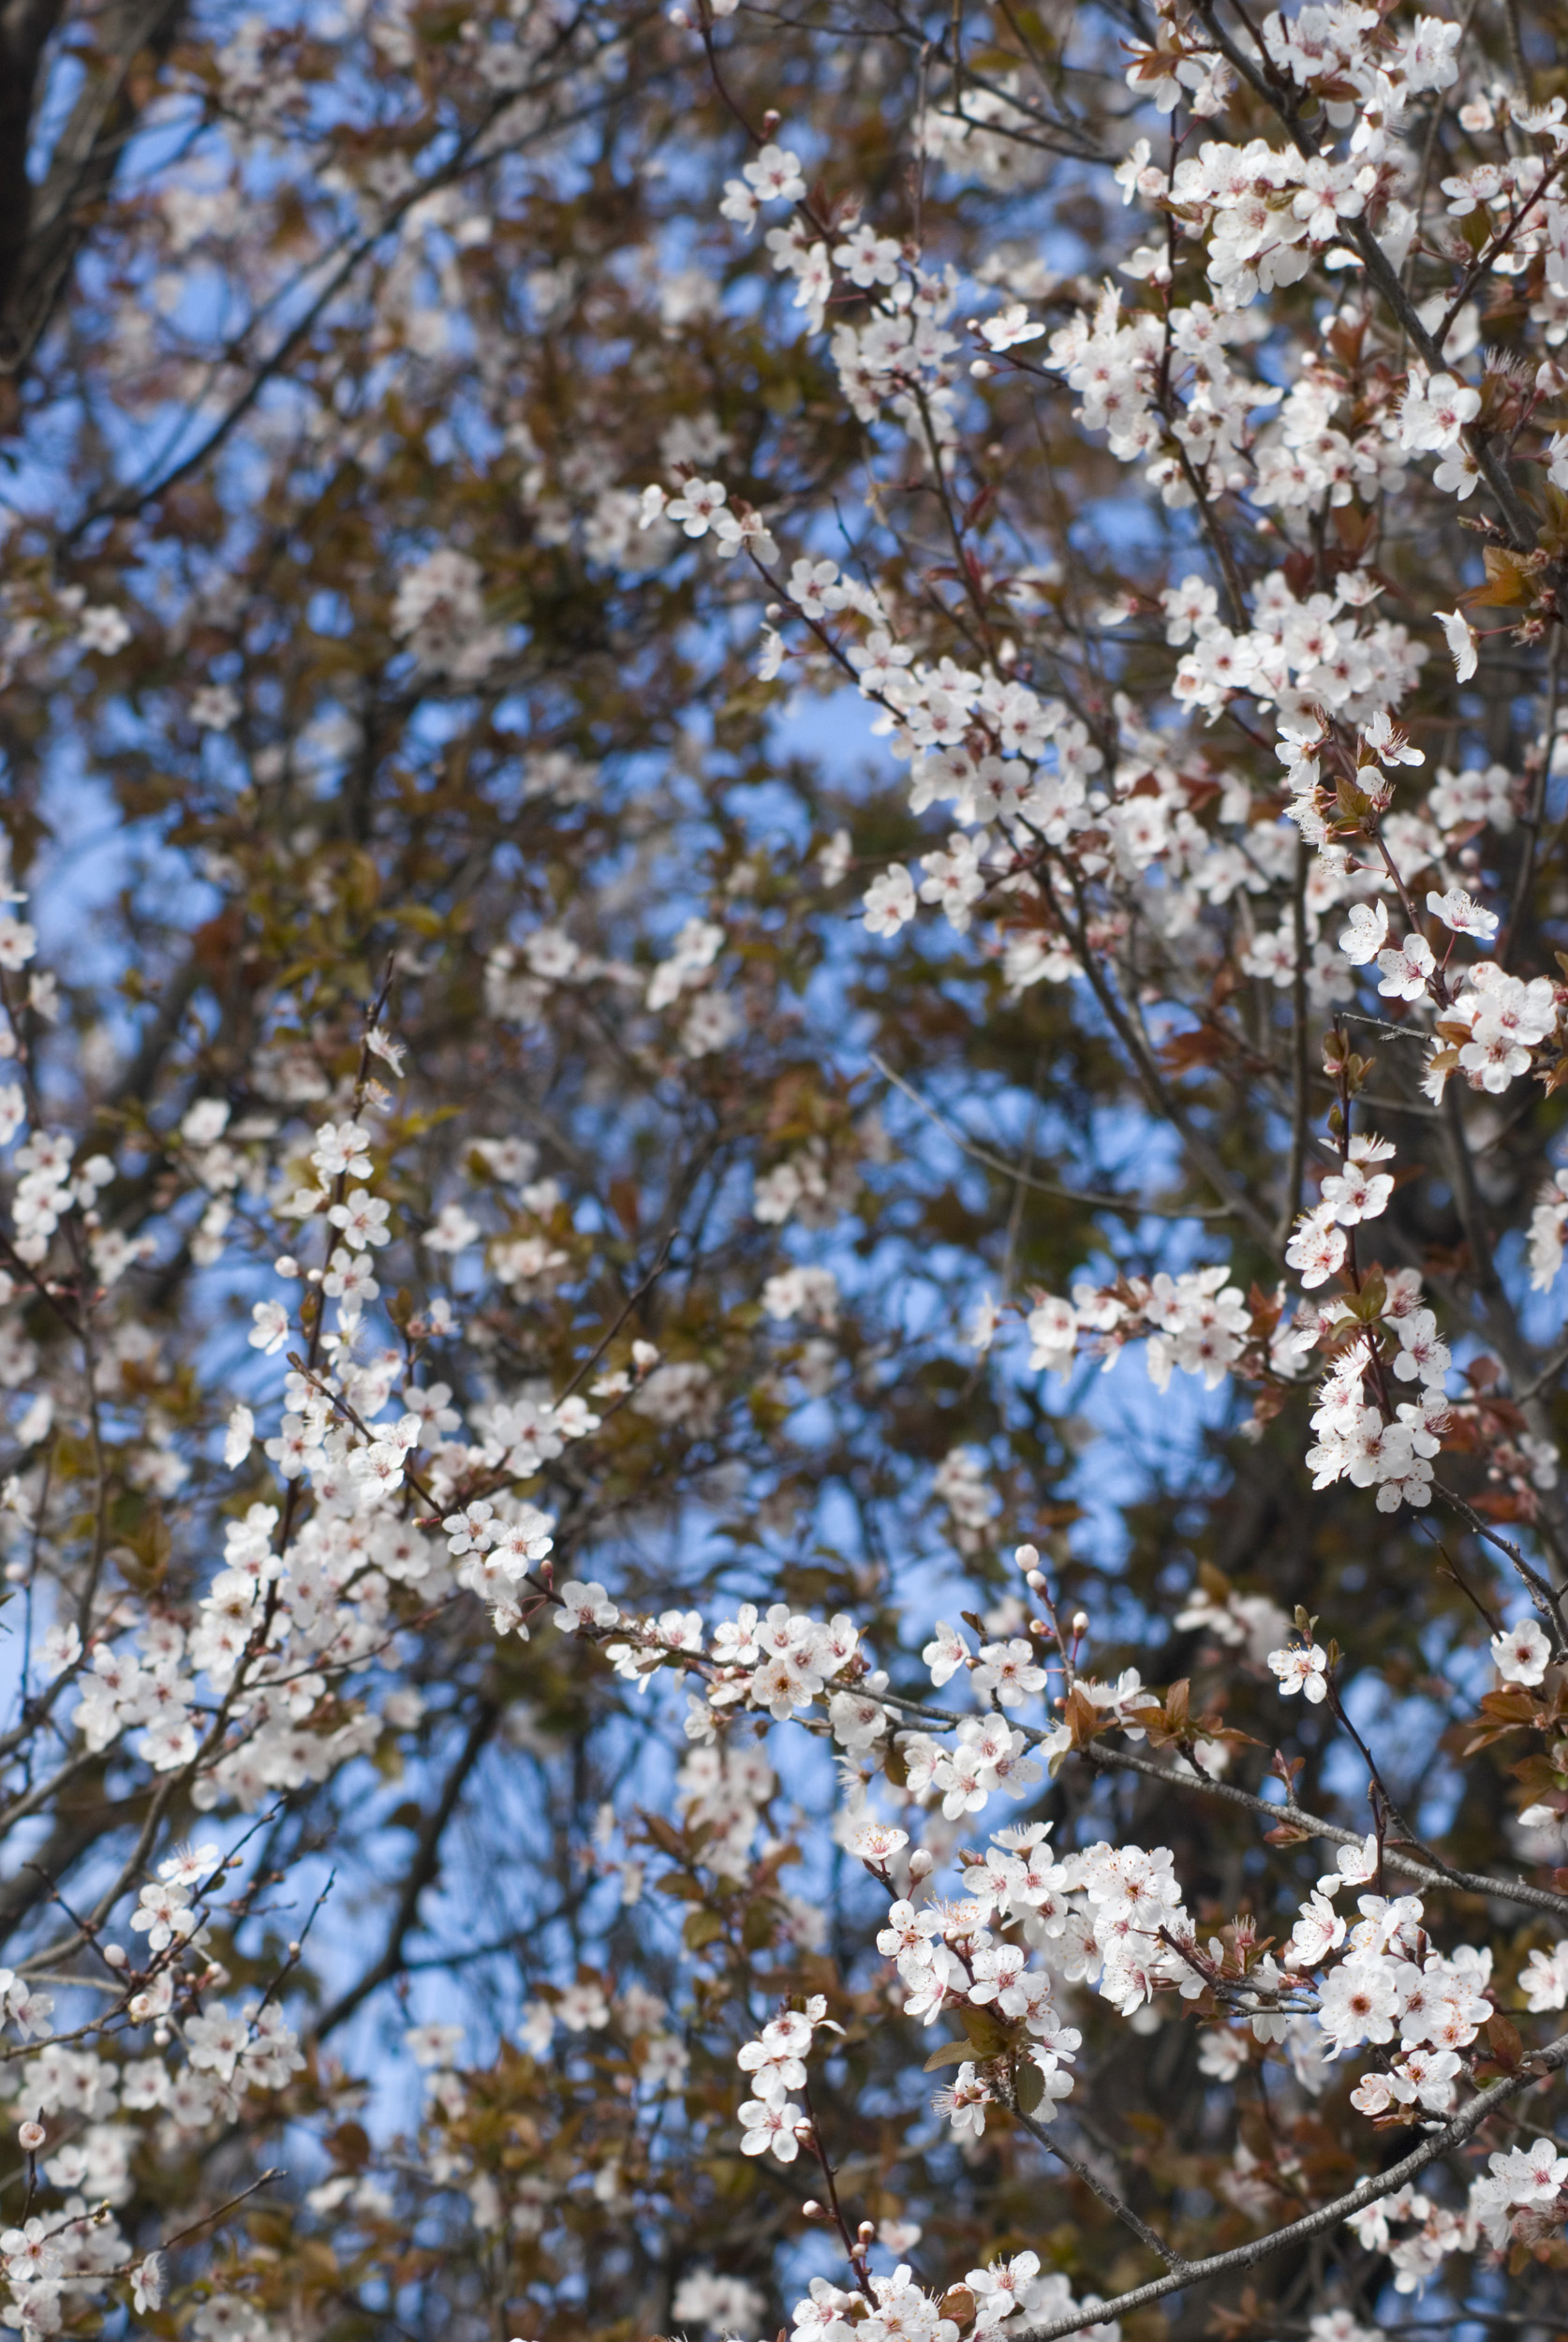 plum_blossom.jpg - Delicate pink decorative spring plum blossom covering a tree with deep maroon foliage against a blue sky